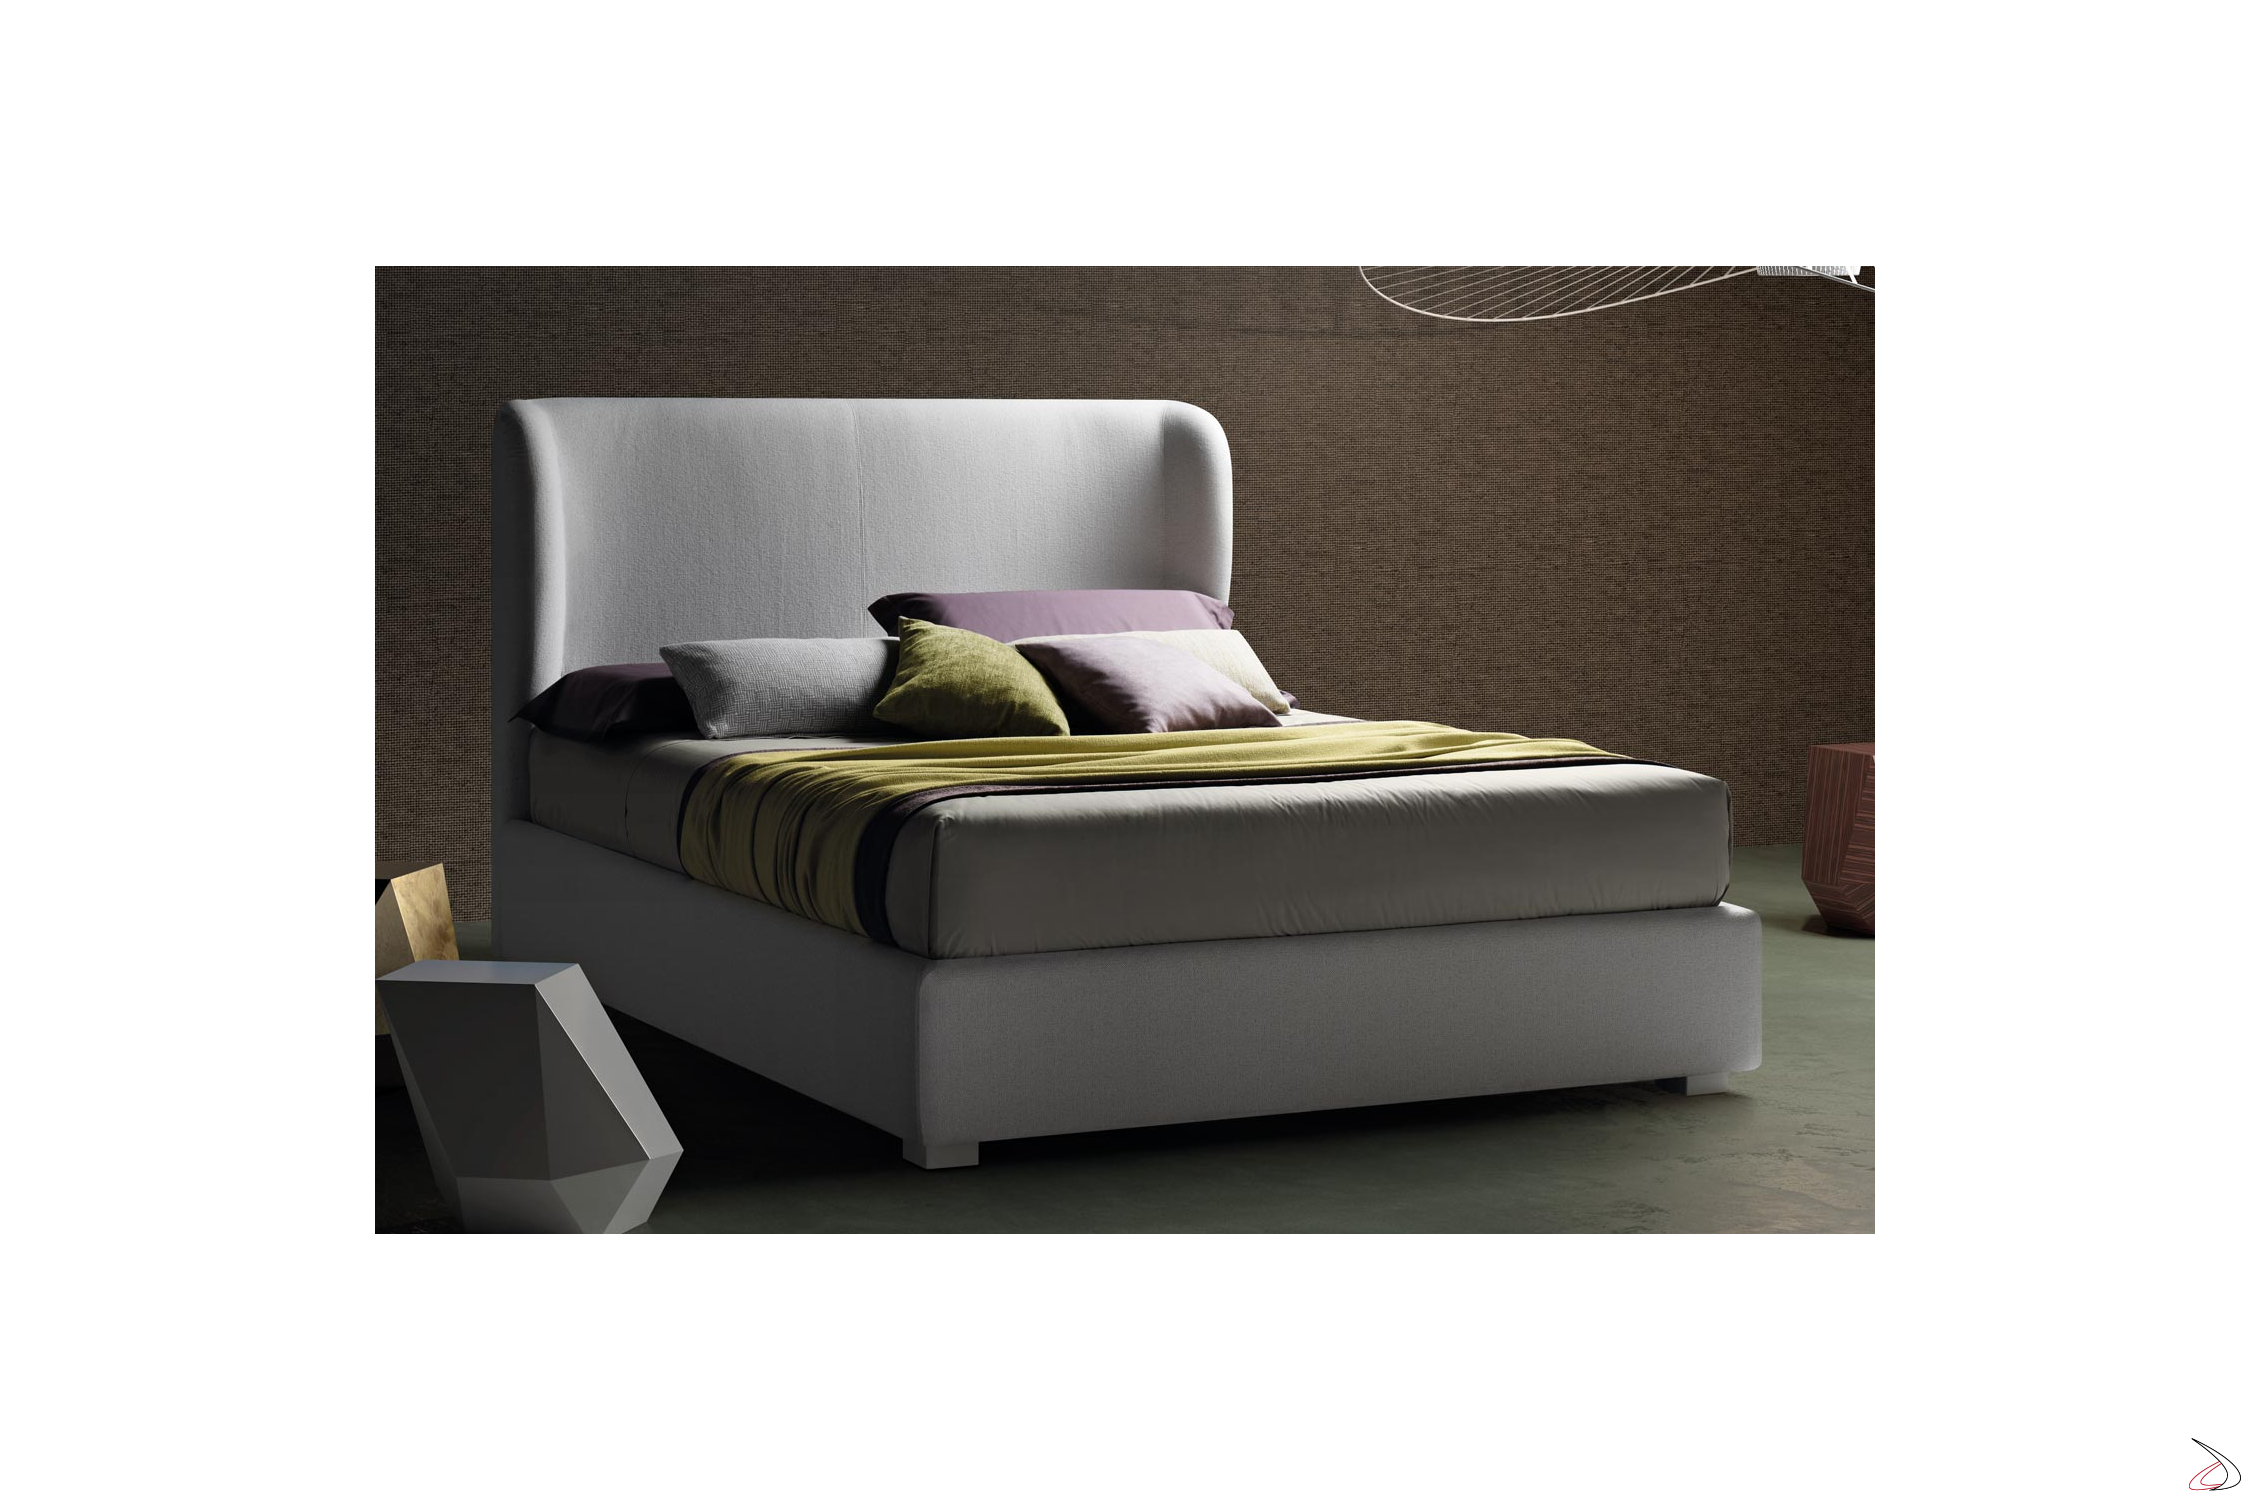 Letto Con Testata.Modern Bed With Alby Curved Headboard Toparredi Arredo Design